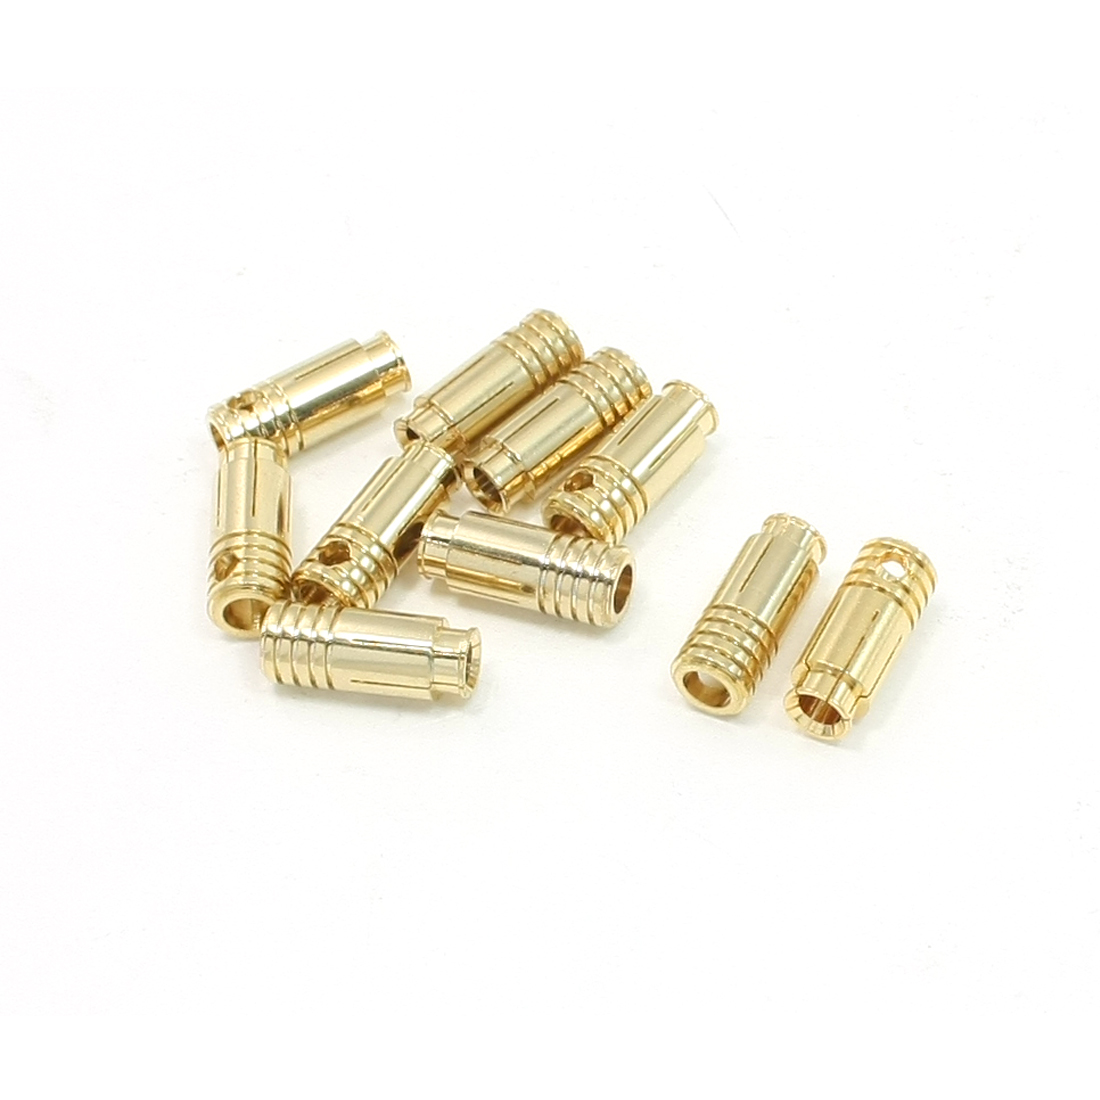 10 Pcs Gold Tone Metal RC 6.5mm Banana Bullet Connecting Connectors